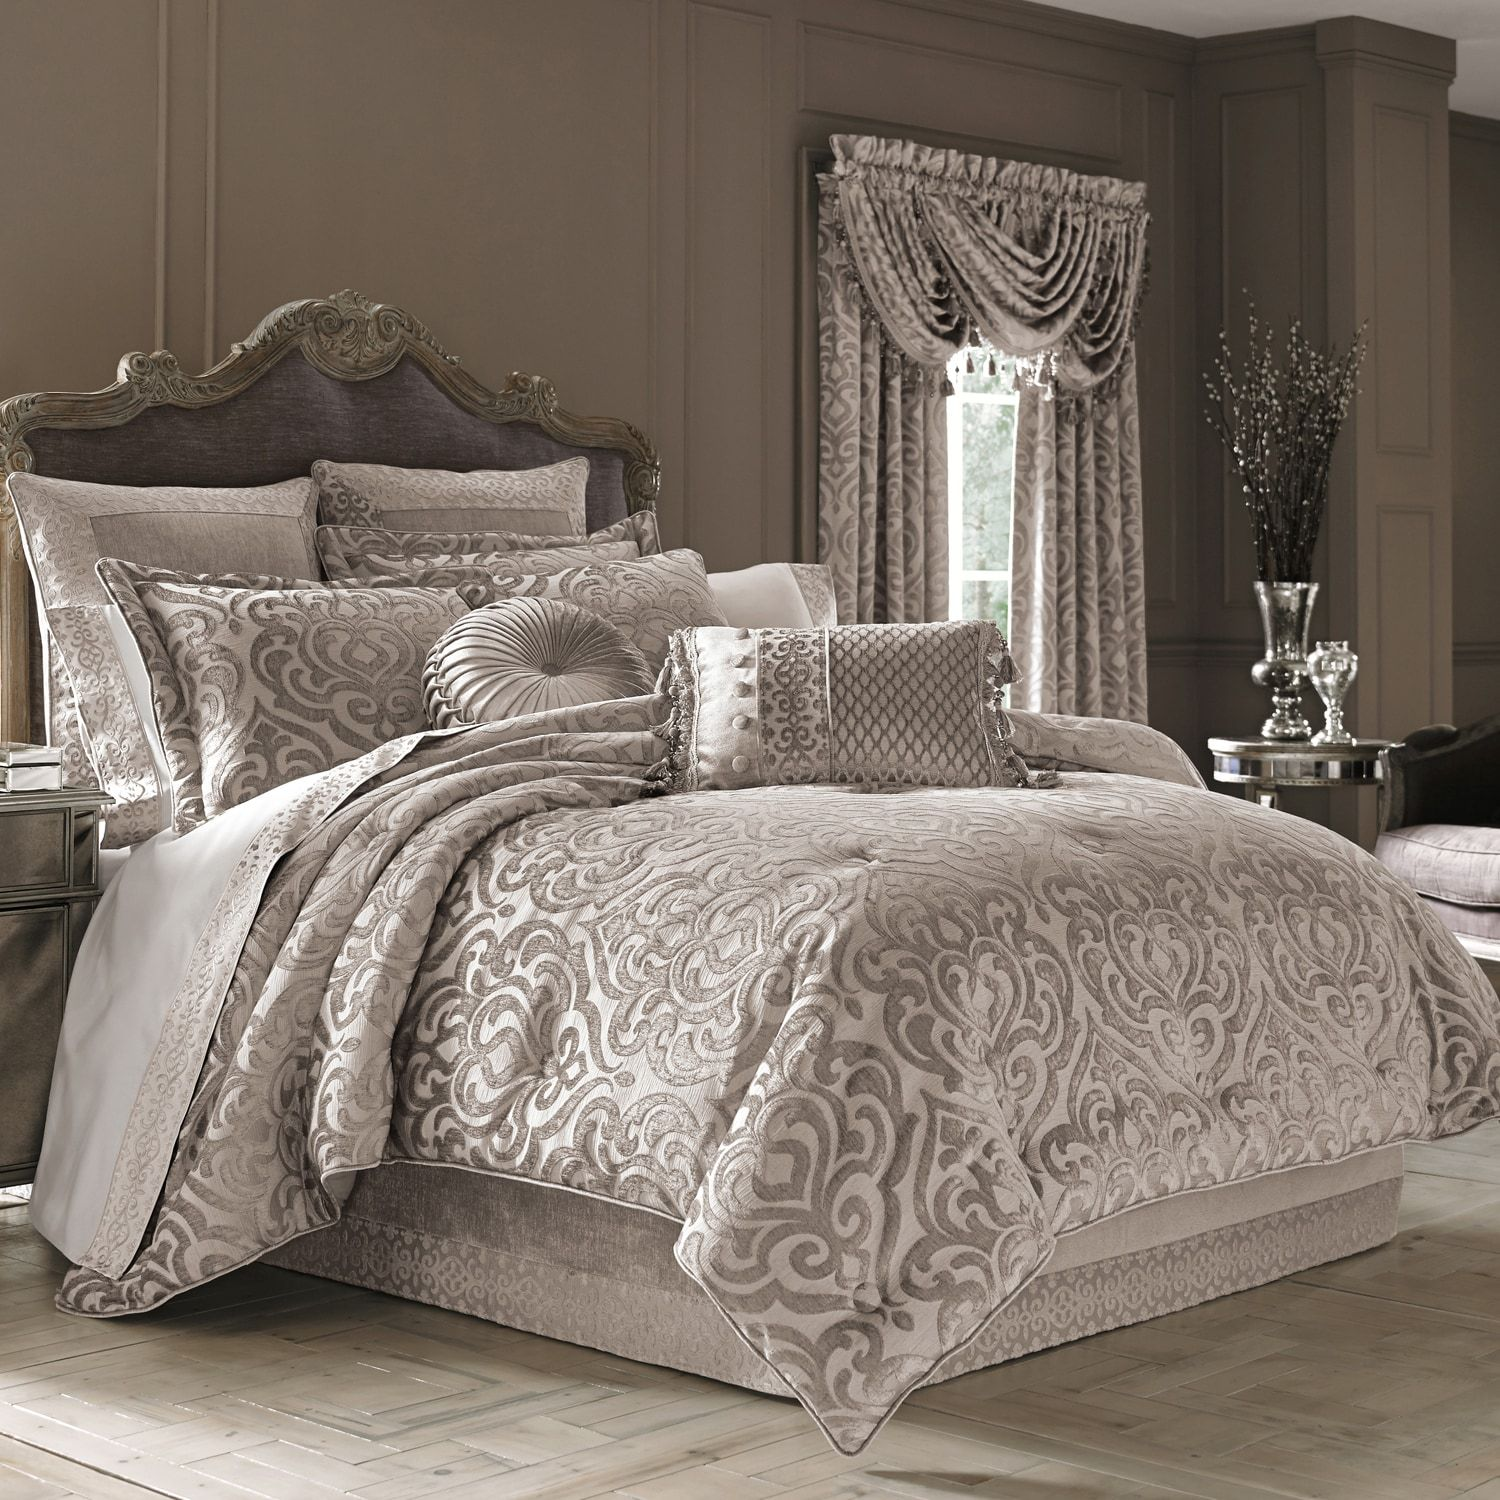 Sydney Pearl Full Comforter Set In 2019